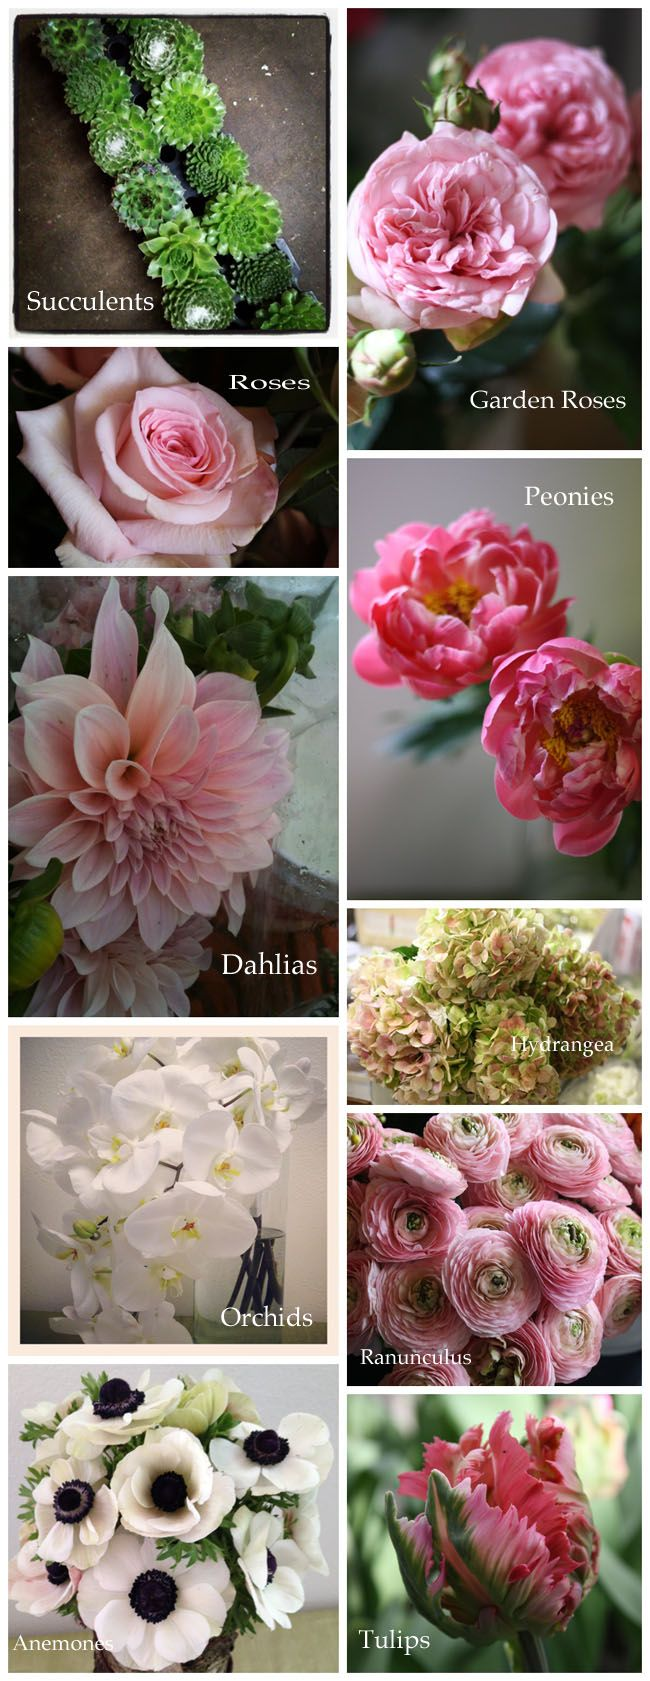 Garden roses, succulents and peonies are popular in 2013.   Garden Roses are a nice alternative if Peonies are not available.  Hydrangeas are lovely in  arrangements but don't hold up well in bouquets in the summer tropical heat.  Orchids always do well, and there are many types and varied prices